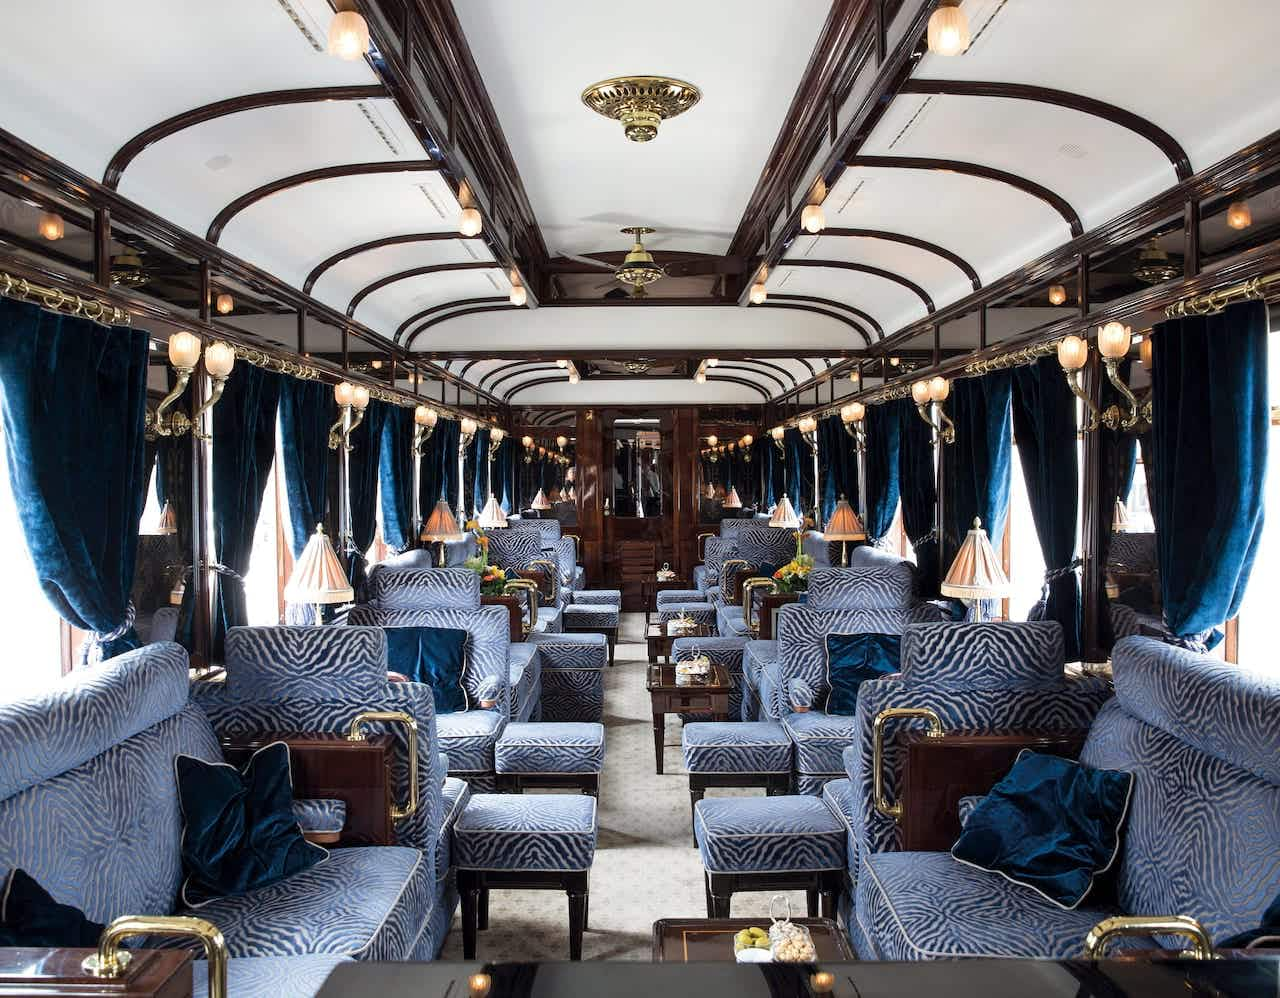 Take a plunge back in time to the 1920s in the new Orient Express suites